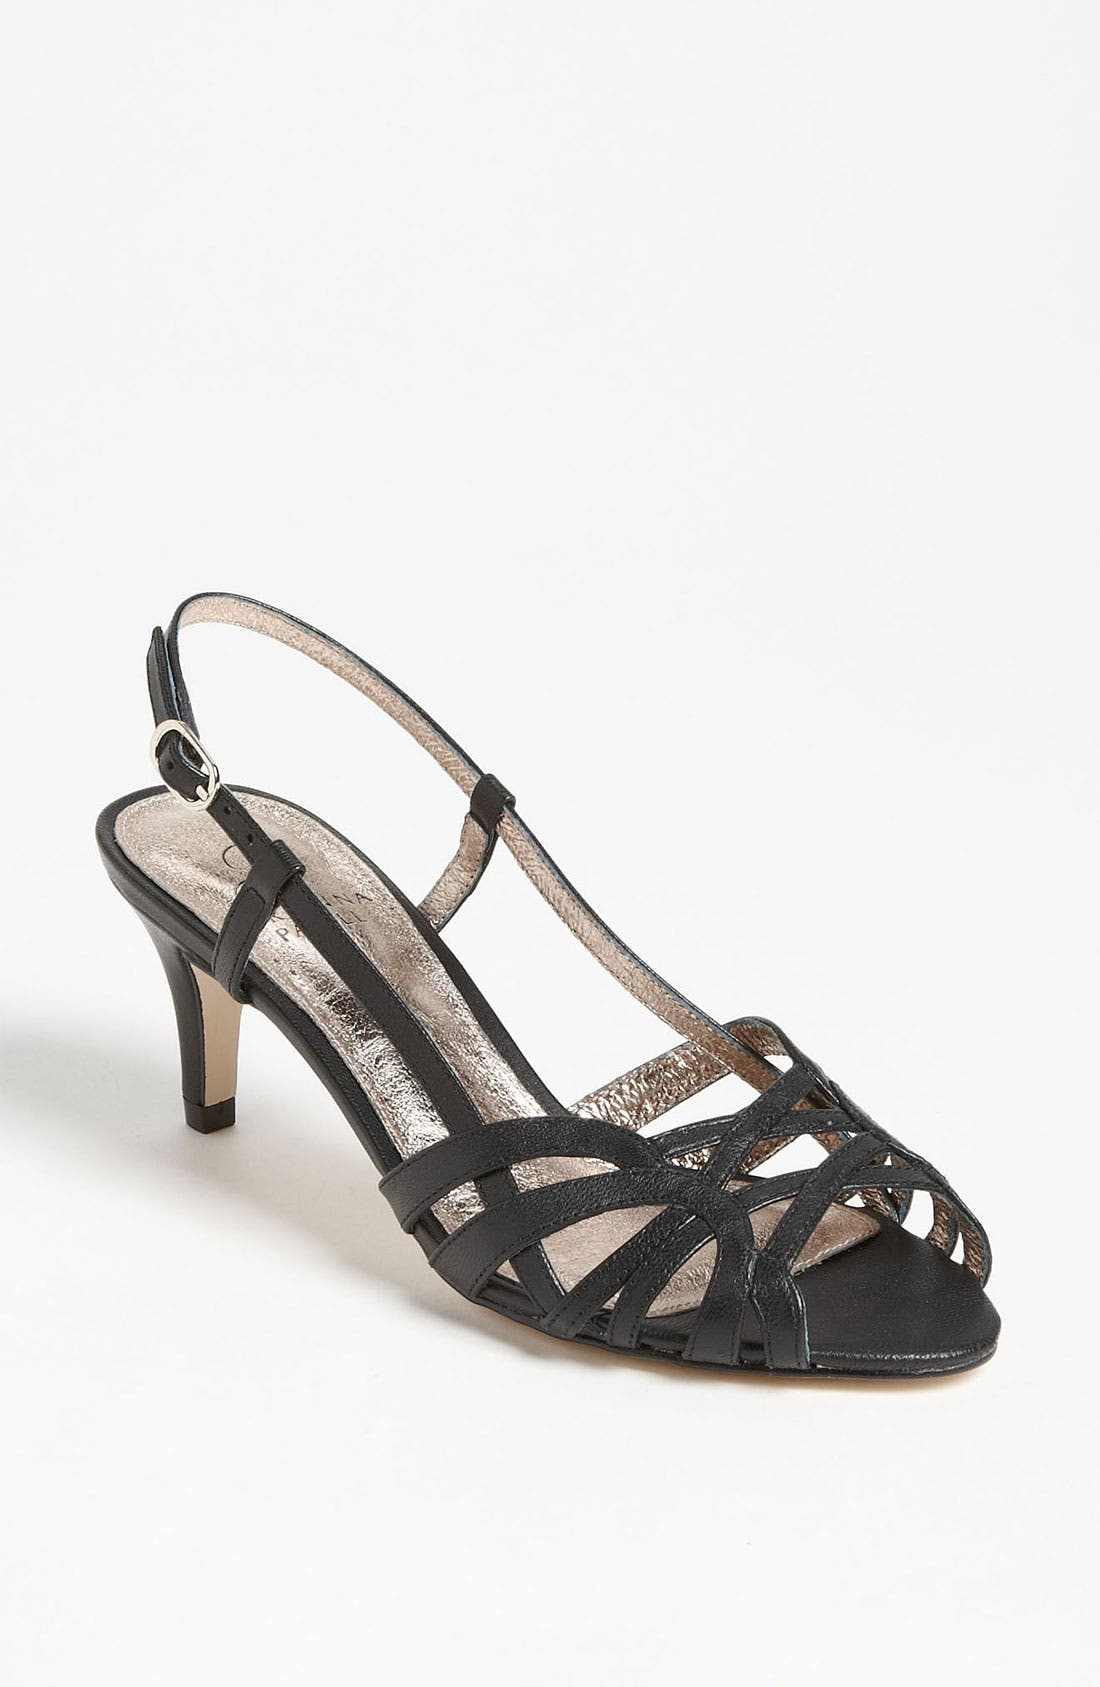 Alternate Image 1 Selected - Adrianna Papell 'Janey' Sandal